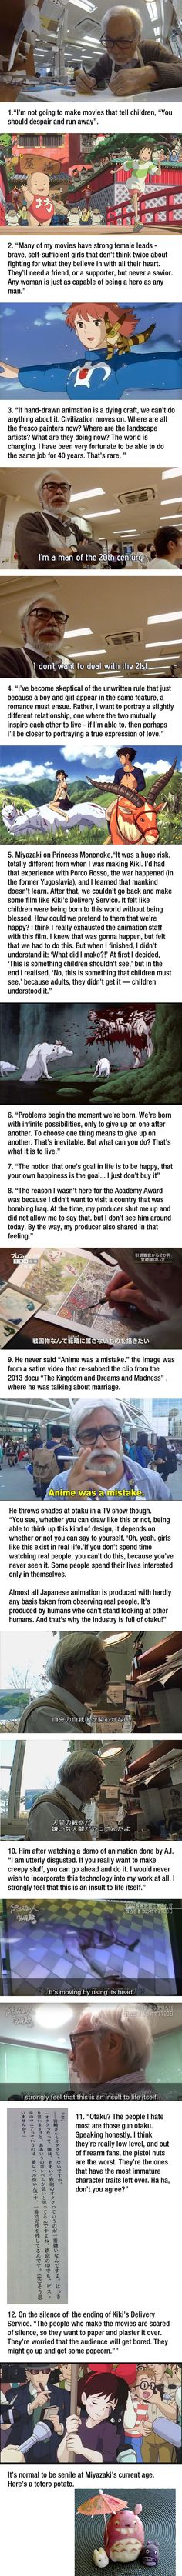 "controversial quotes by Hayao Miyazaki. No, he never said ""anime was a mistake"" 12 controversial quotes by Hayao Miyazaki. No, he never said ""anime was a controversial quotes by Hayao Miyazaki. No, he never said ""anime was a mistake"" Hayao Miyazaki, Totoro, Studio Ghibli Art, Studio Ghibli Movies, Studio Ghibli Quotes, Tokyo Ghoul, Mega Anime, Anime Was A Mistake, Castle In The Sky"